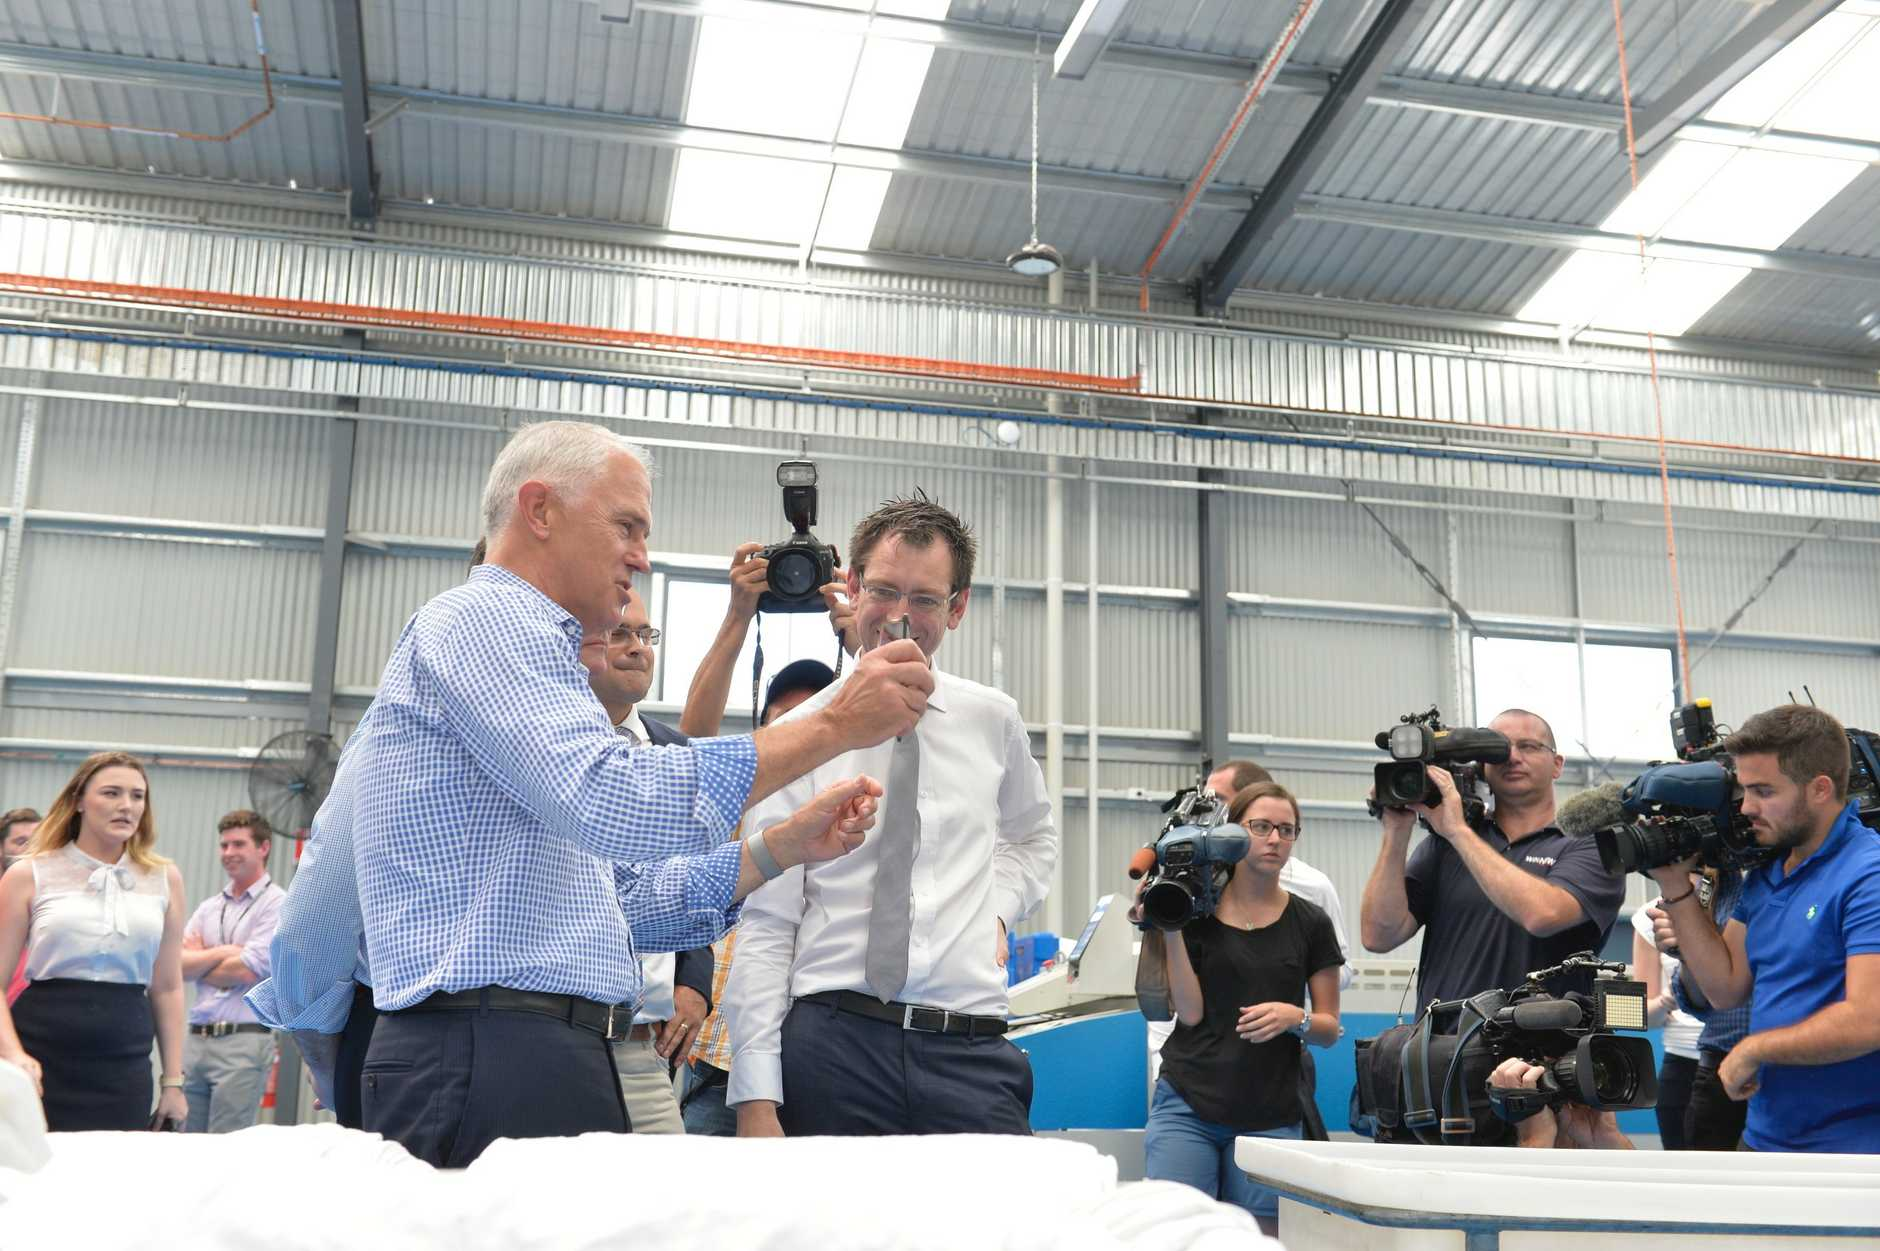 Prime Minister Malcolm Turnbull at Vanguard Laundry.